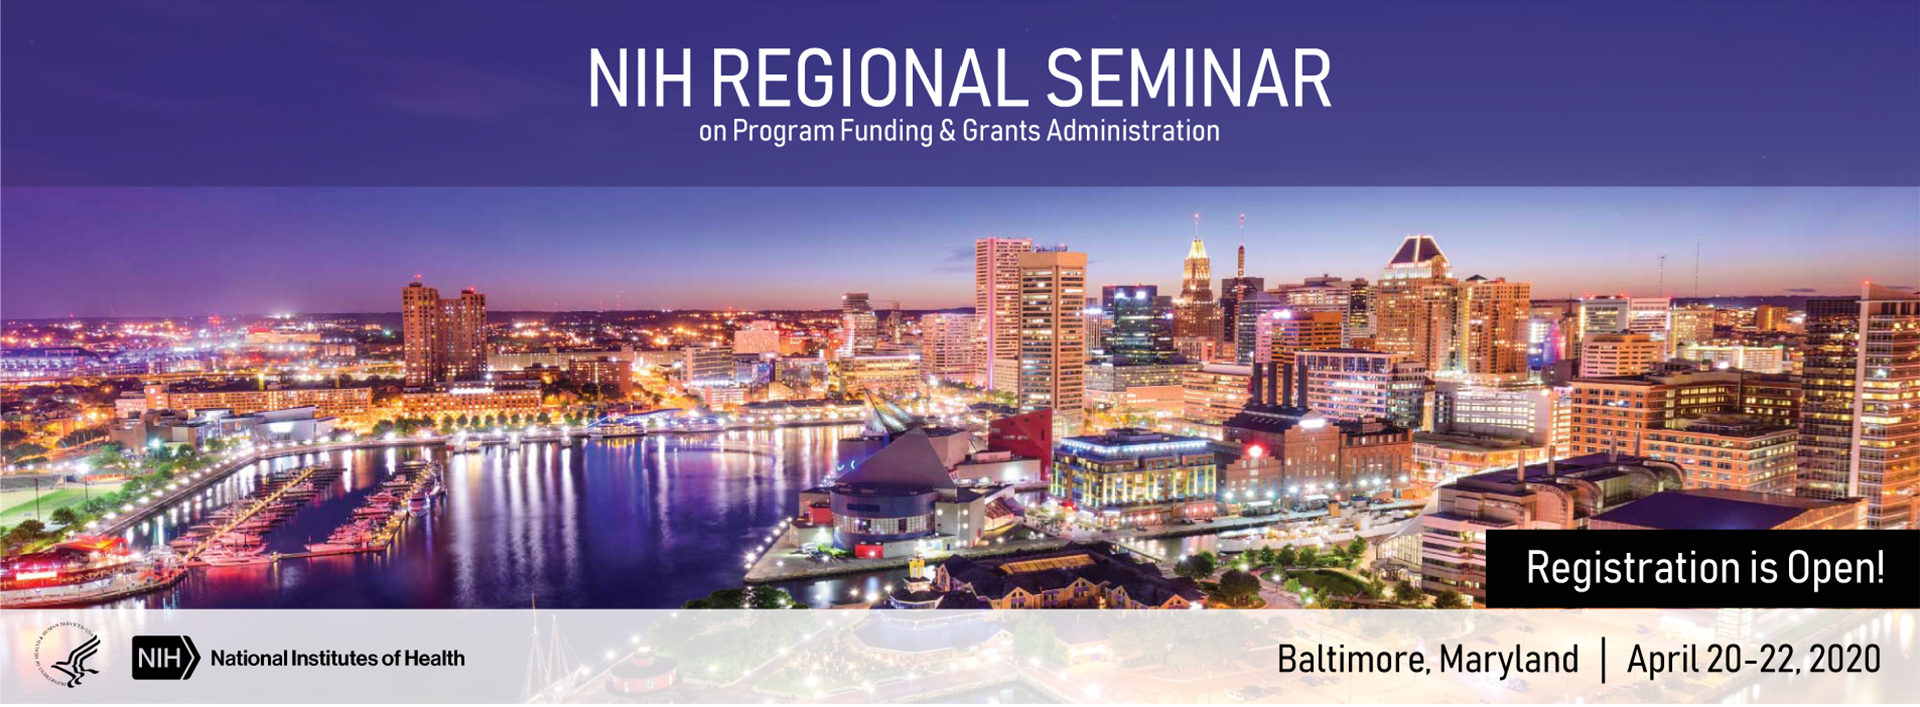 2020 NIH Regional Seminar on Program Funding and Grants Administration